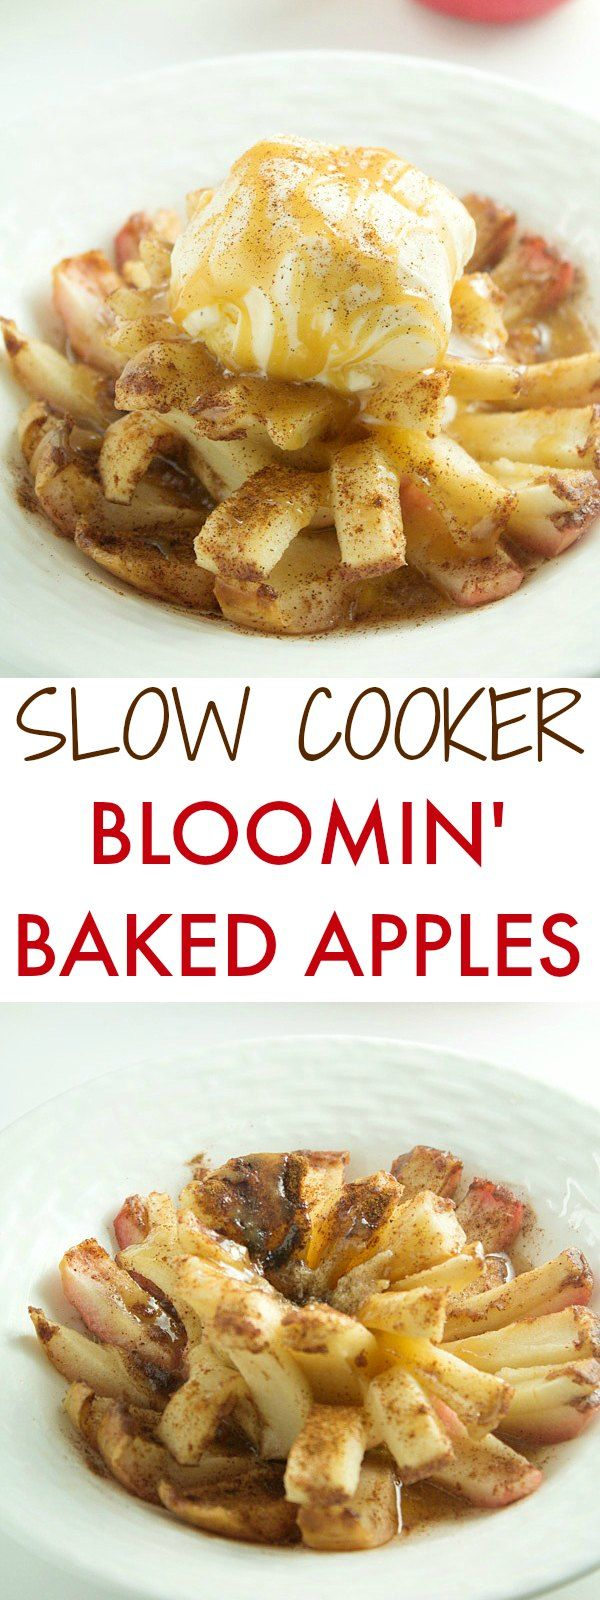 Mouthwatering Bloomin' Baked Apples - Melt in your mouth baked apples in crockpot is the perfect dessert for any occasion. Seriously one of the best baked apples recipe you will ever make.